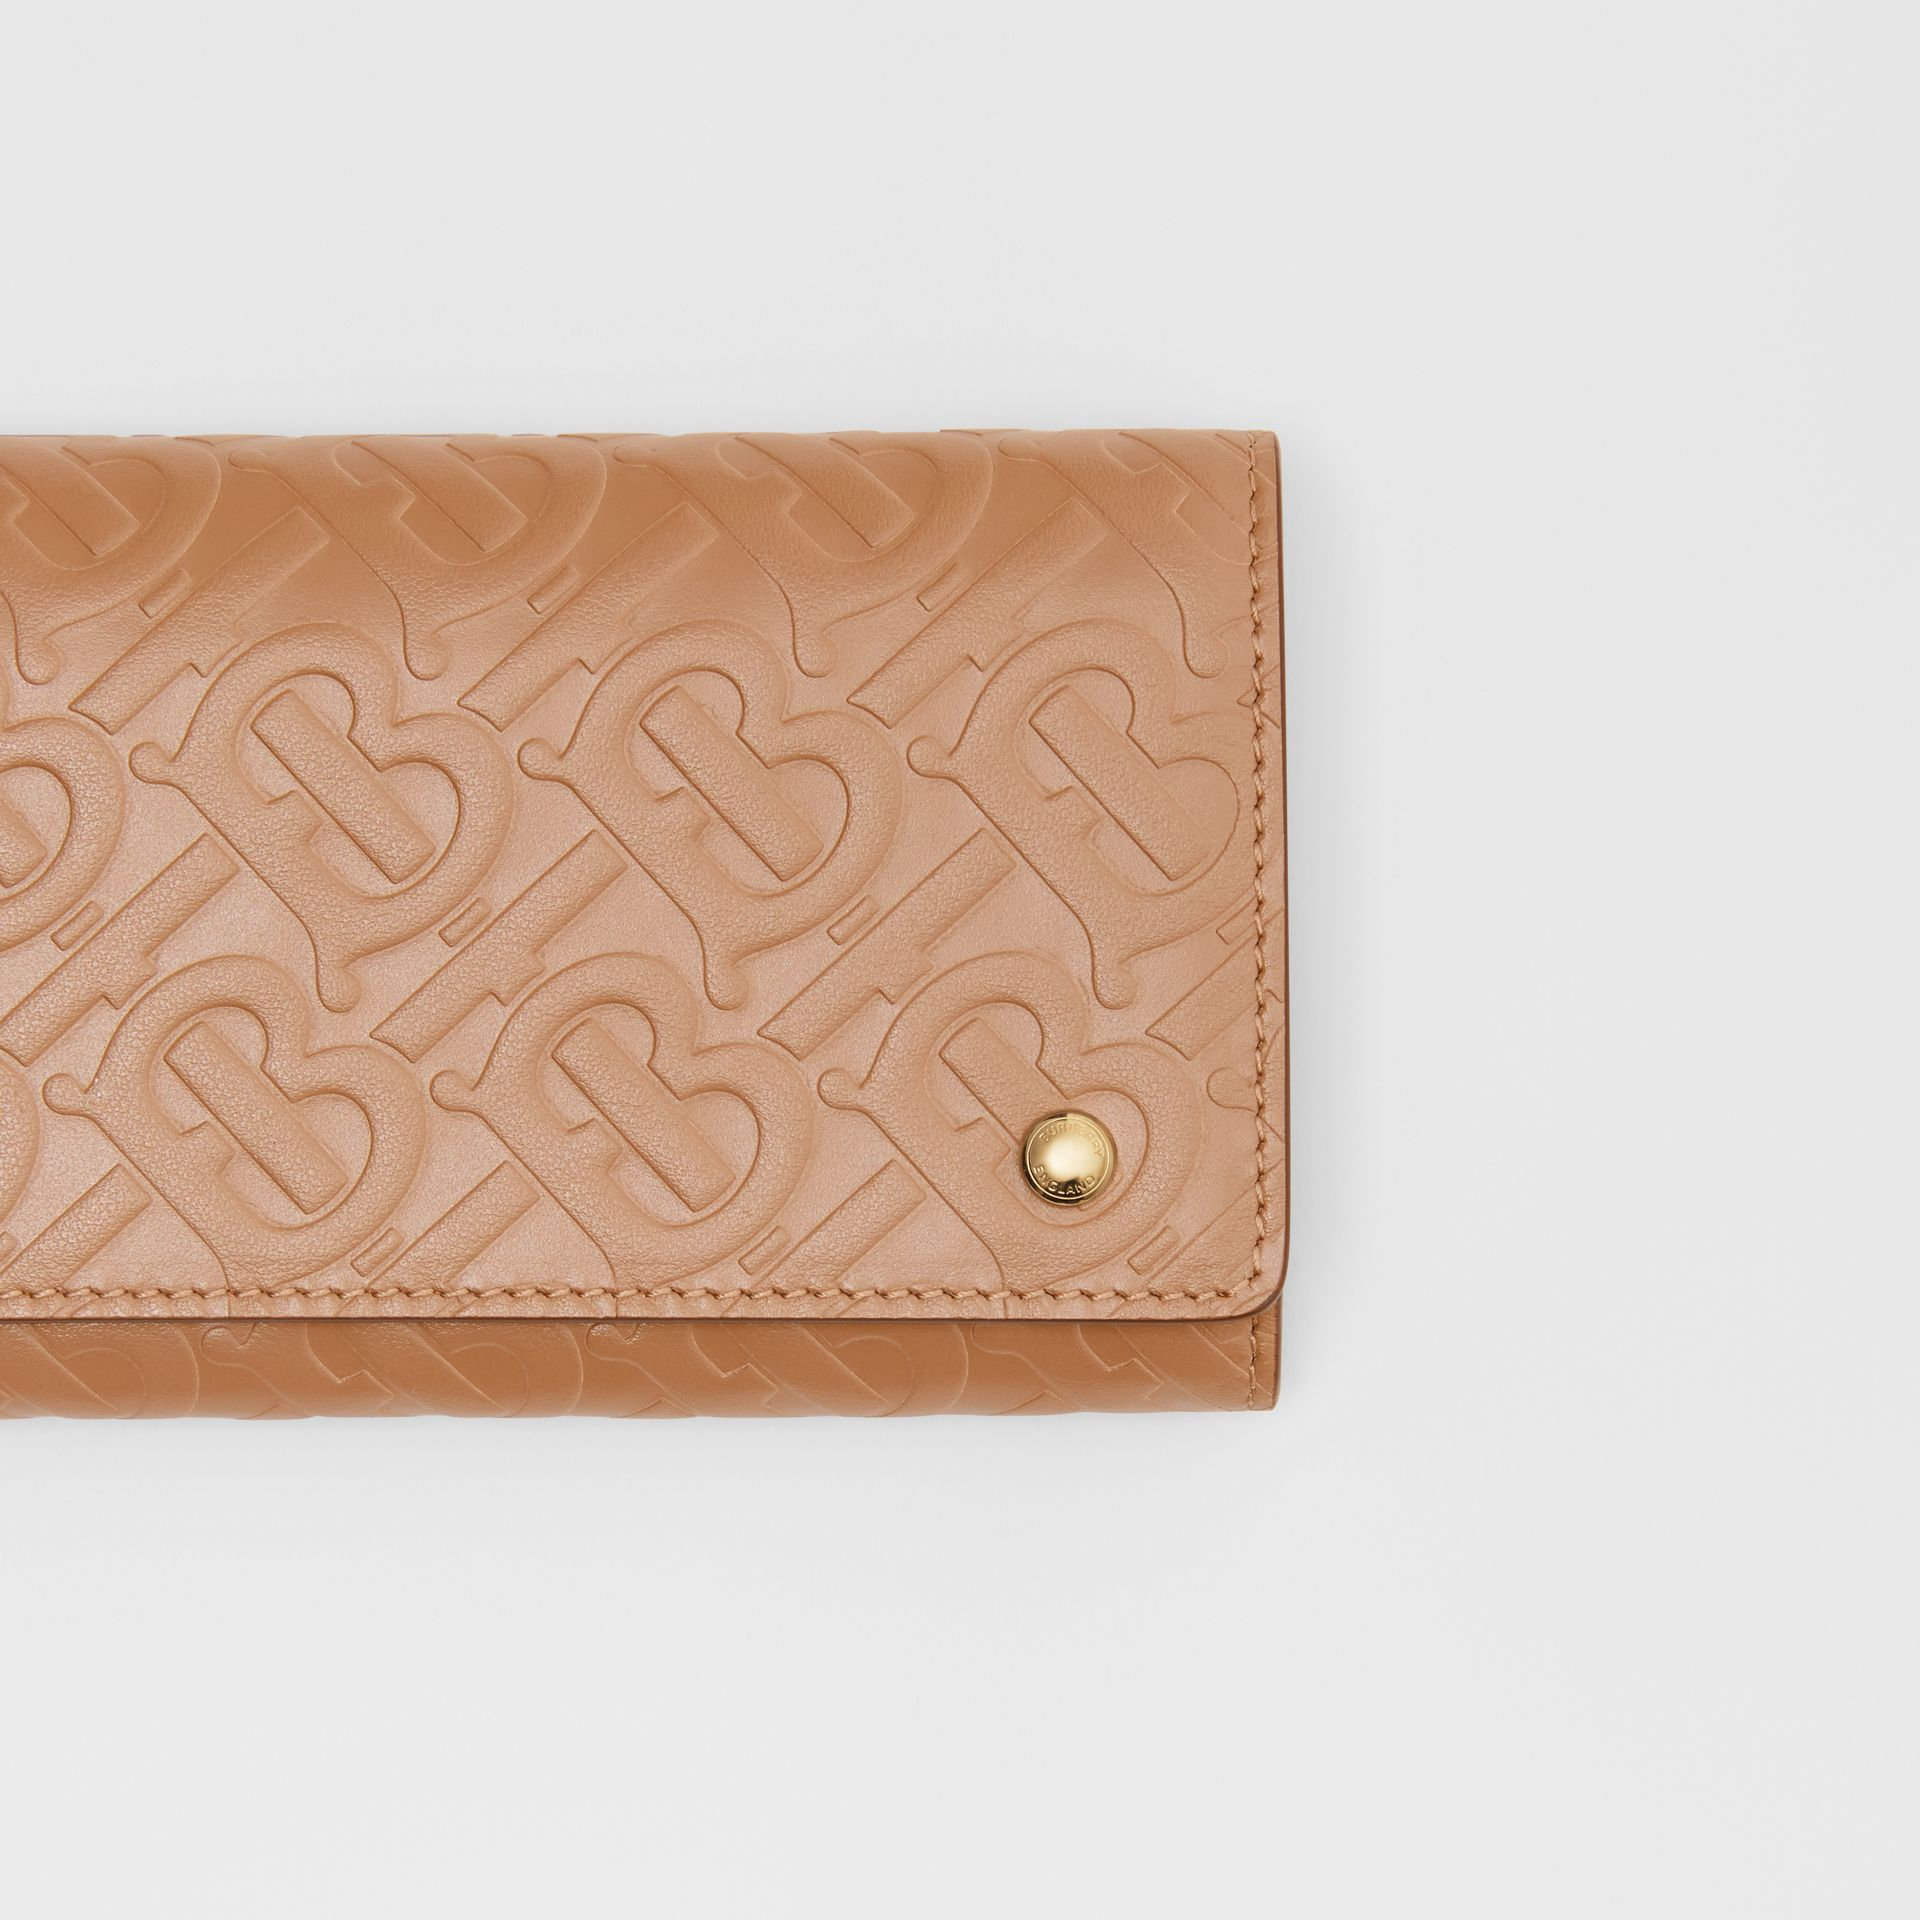 Monogram Leather Continental Wallet in Light Camel - Women | Burberry Hong Kong - gallery image 1